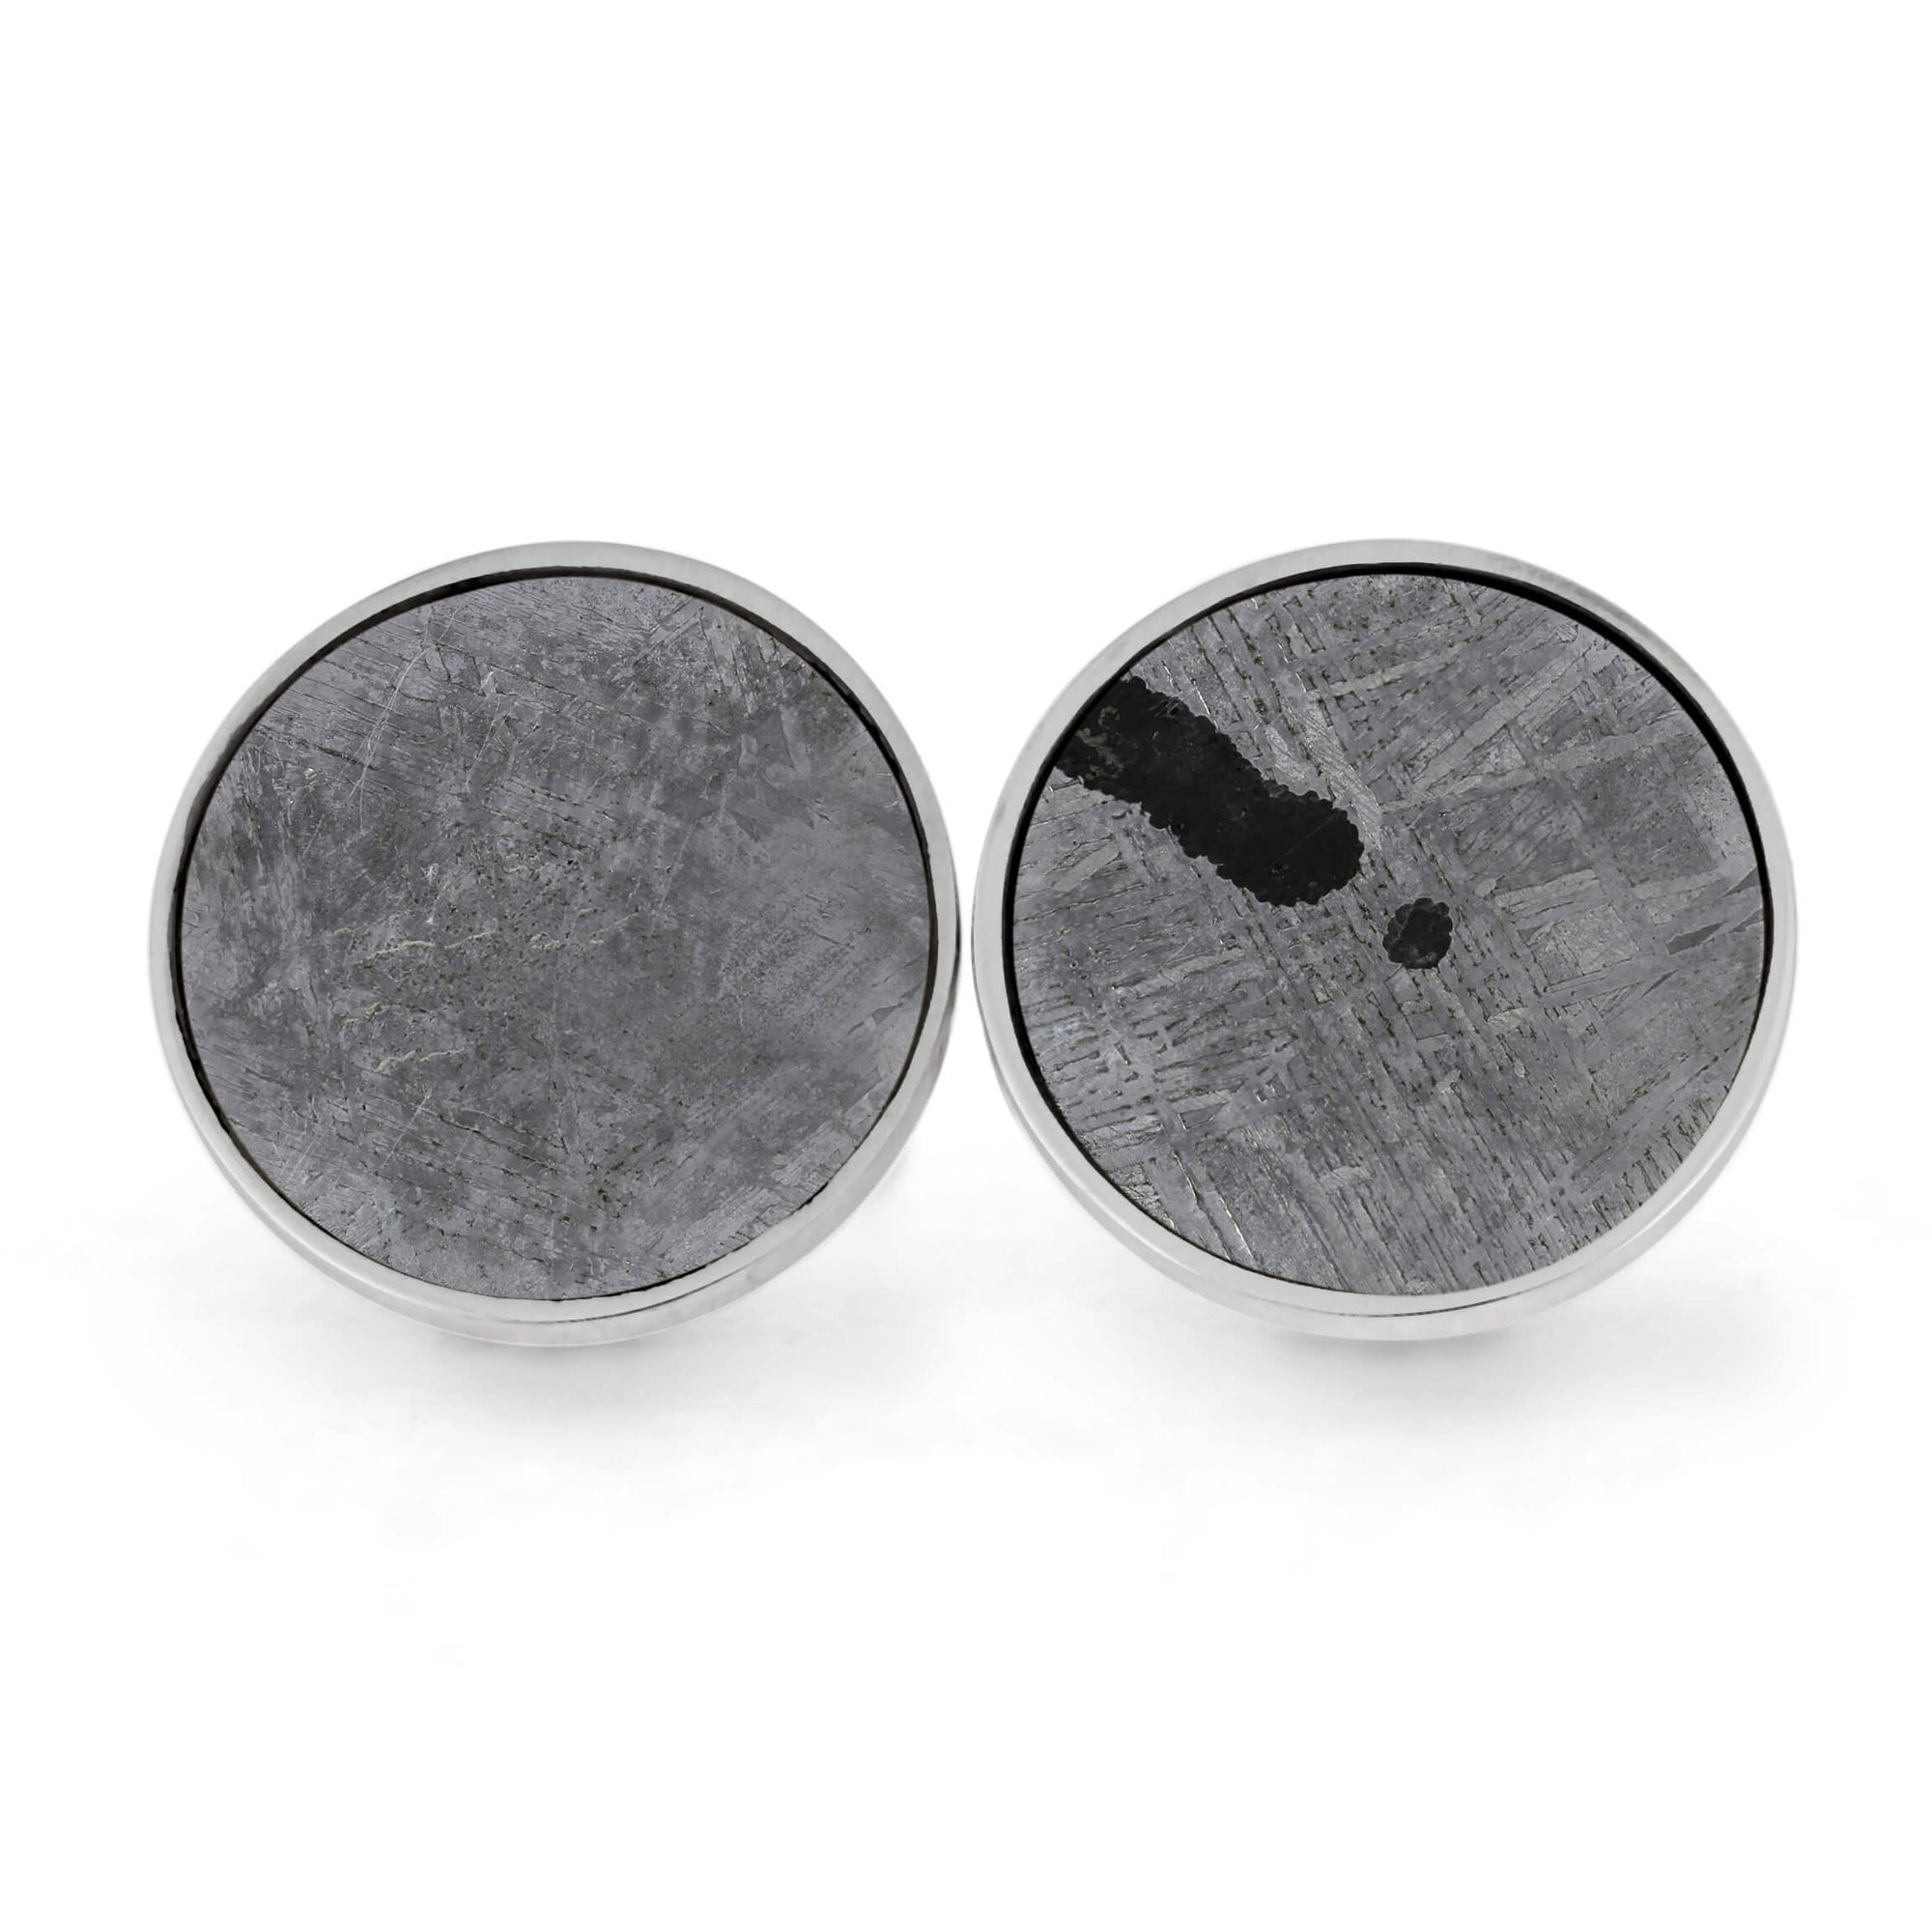 Pair of Meteorite Cuff Links in Sterling Silver with Unique Troilite-RS11026 - Jewelry by Johan